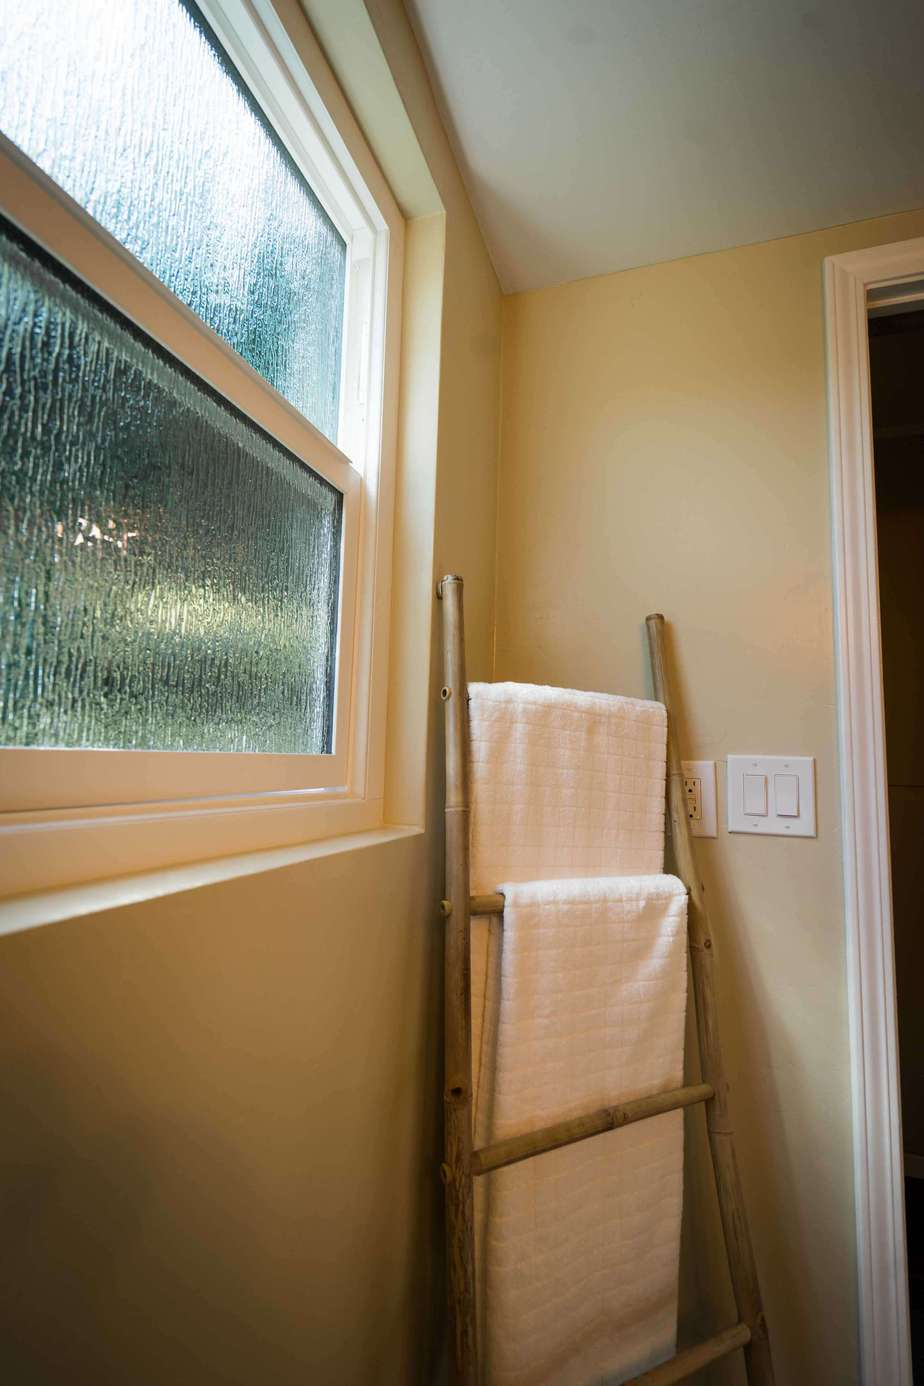 Retrofit window replacement classic home improvements for Retrofit windows